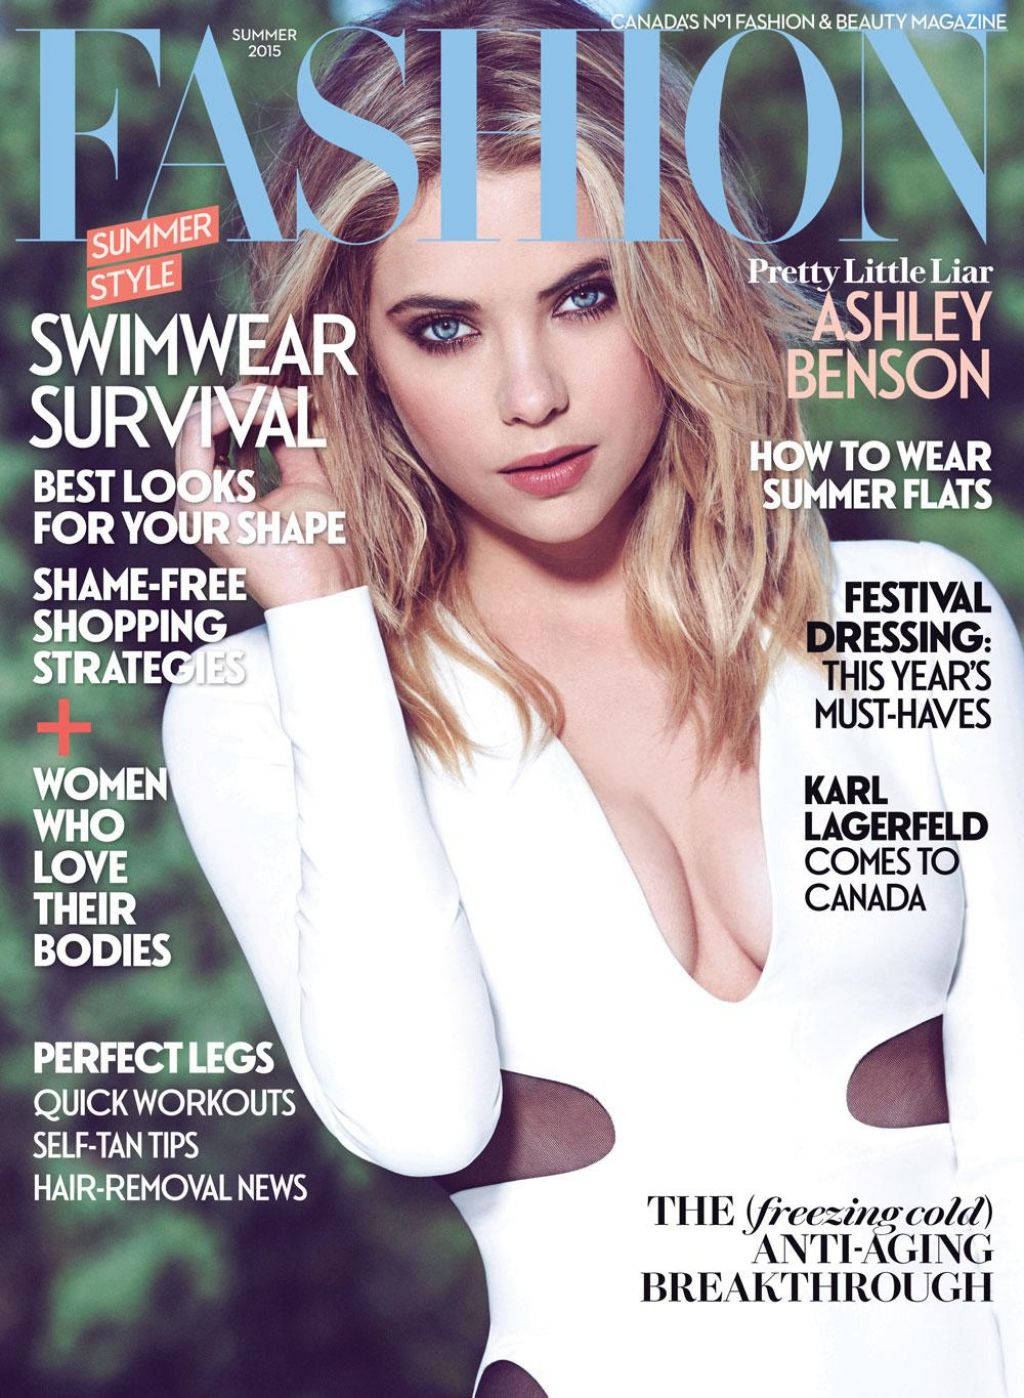 Fashion Magazine May 2015 Cover And Photo